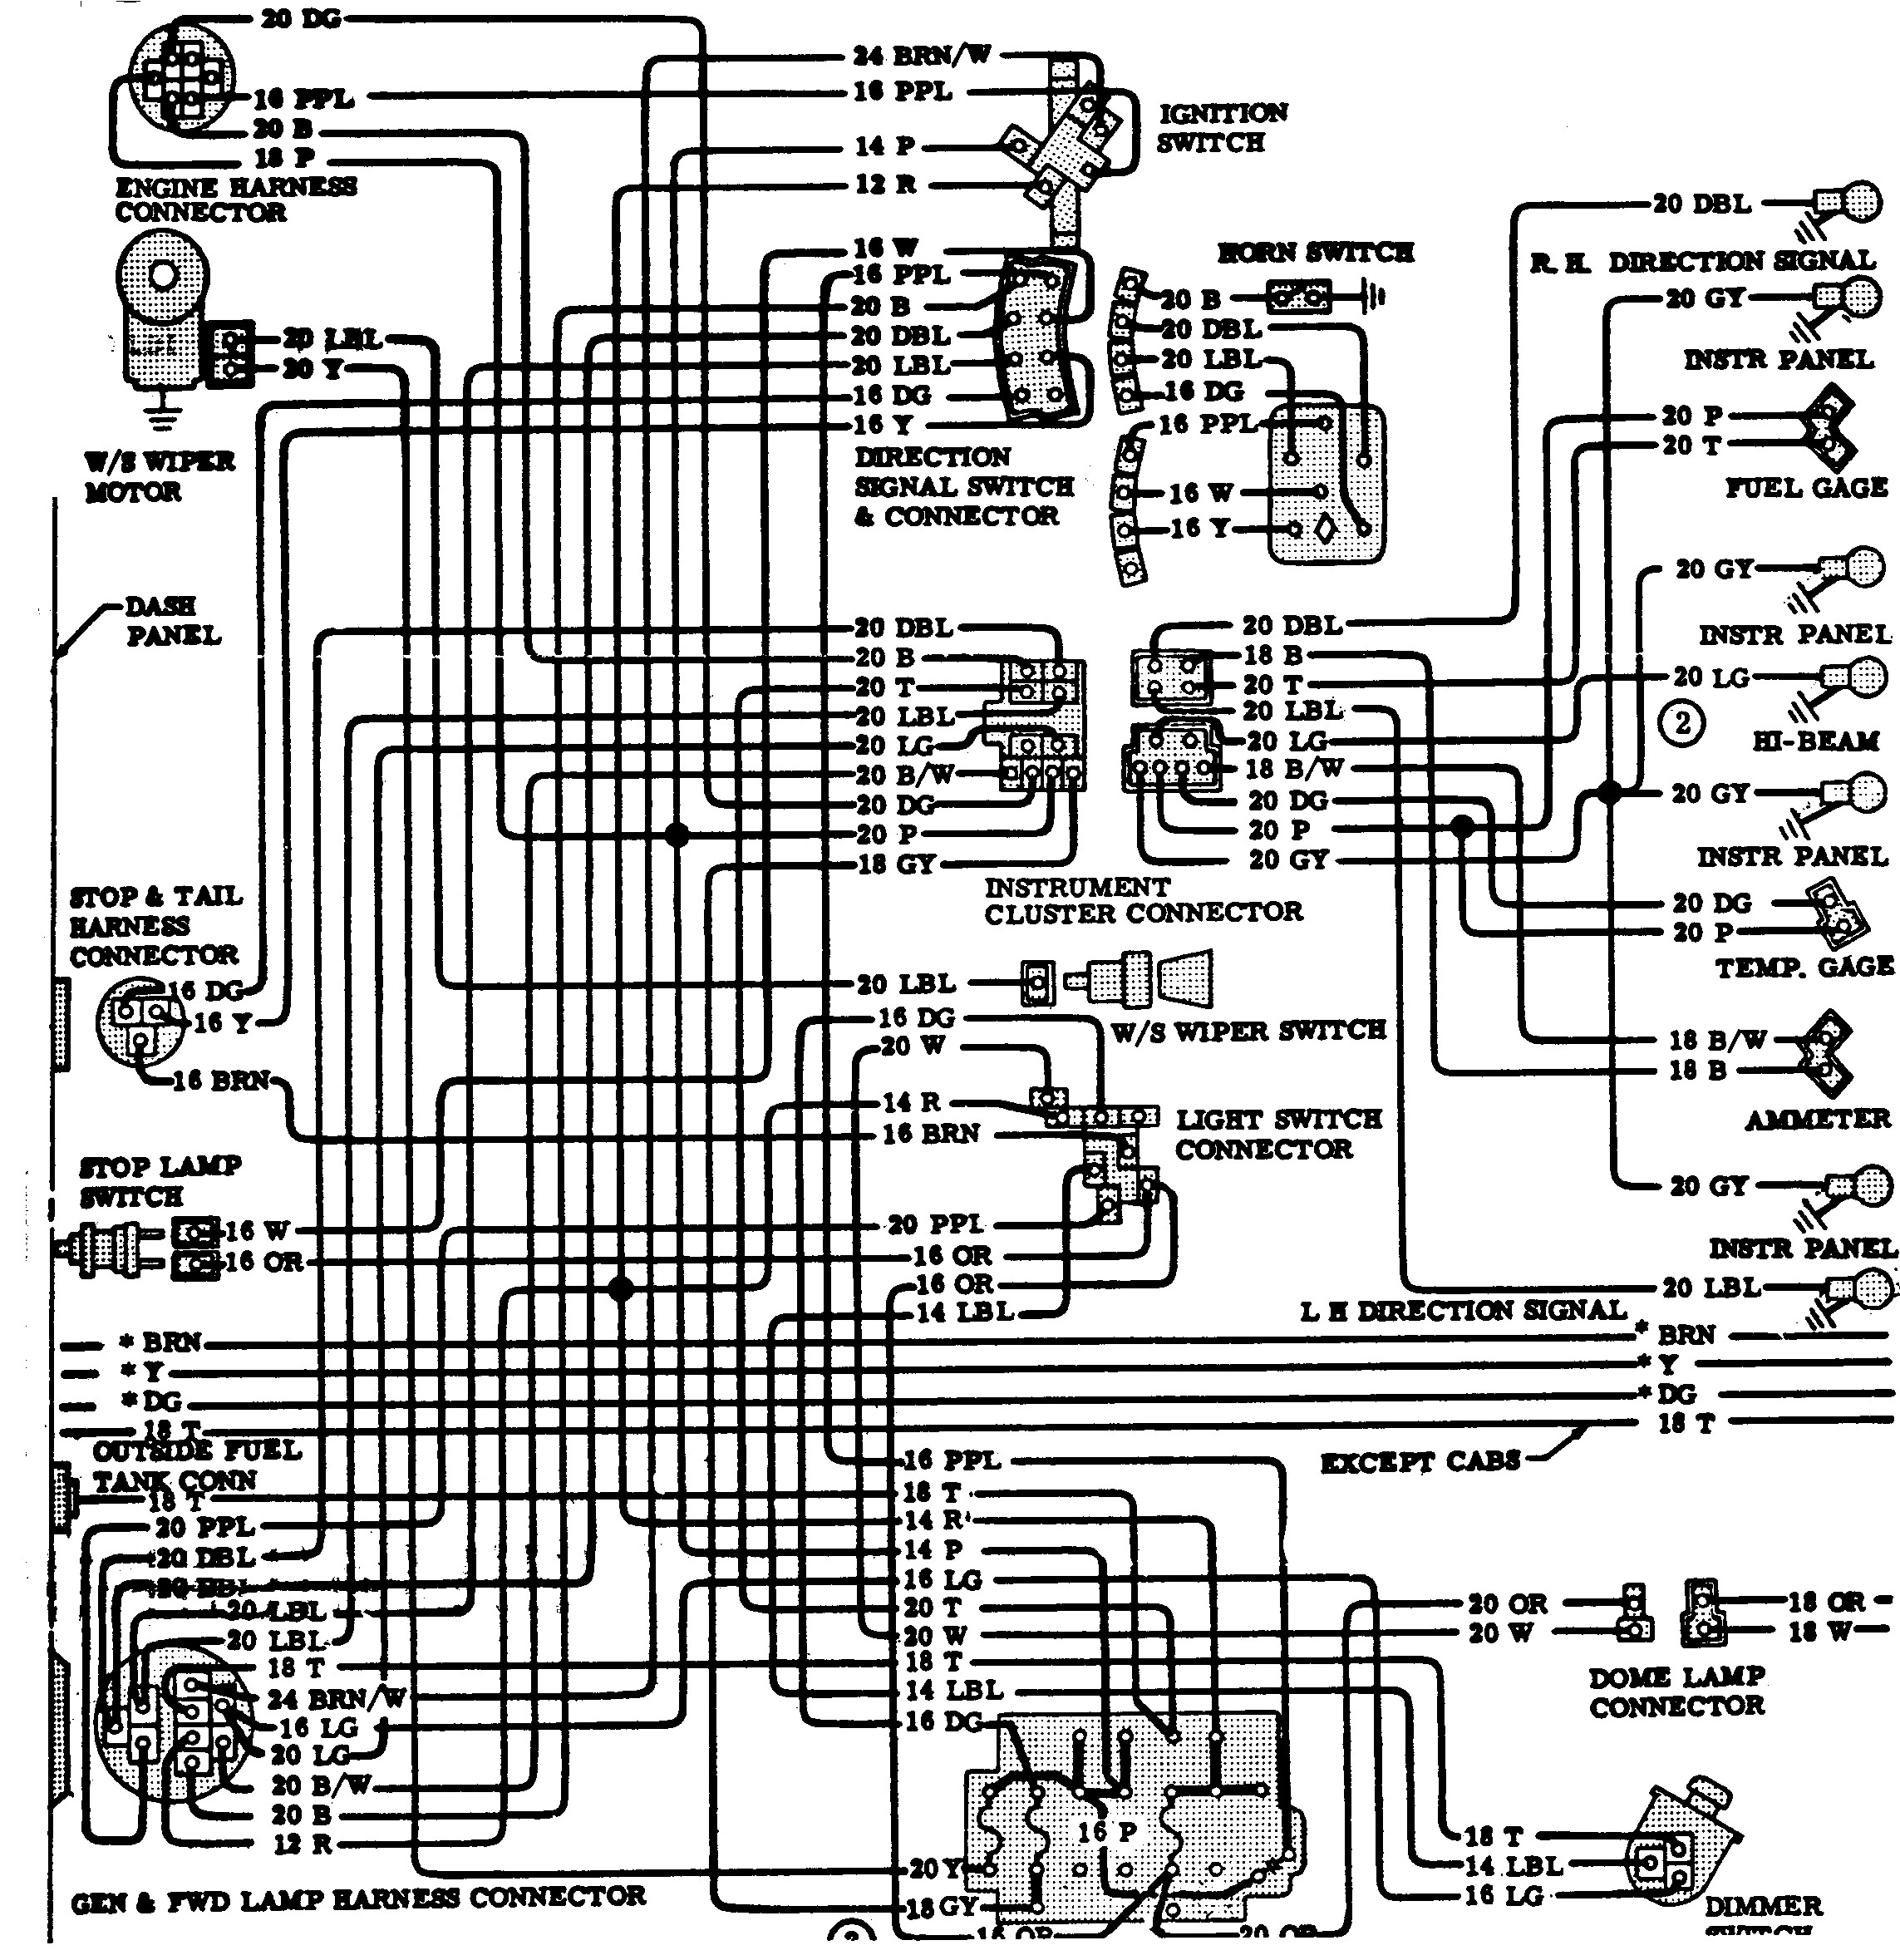 1974 Chevy Truck Wiring Diagram 1970 Chevrolet C10 Wiring Diagram Download – Wiring Diagram Collection Of 1974 Chevy Truck Wiring Diagram